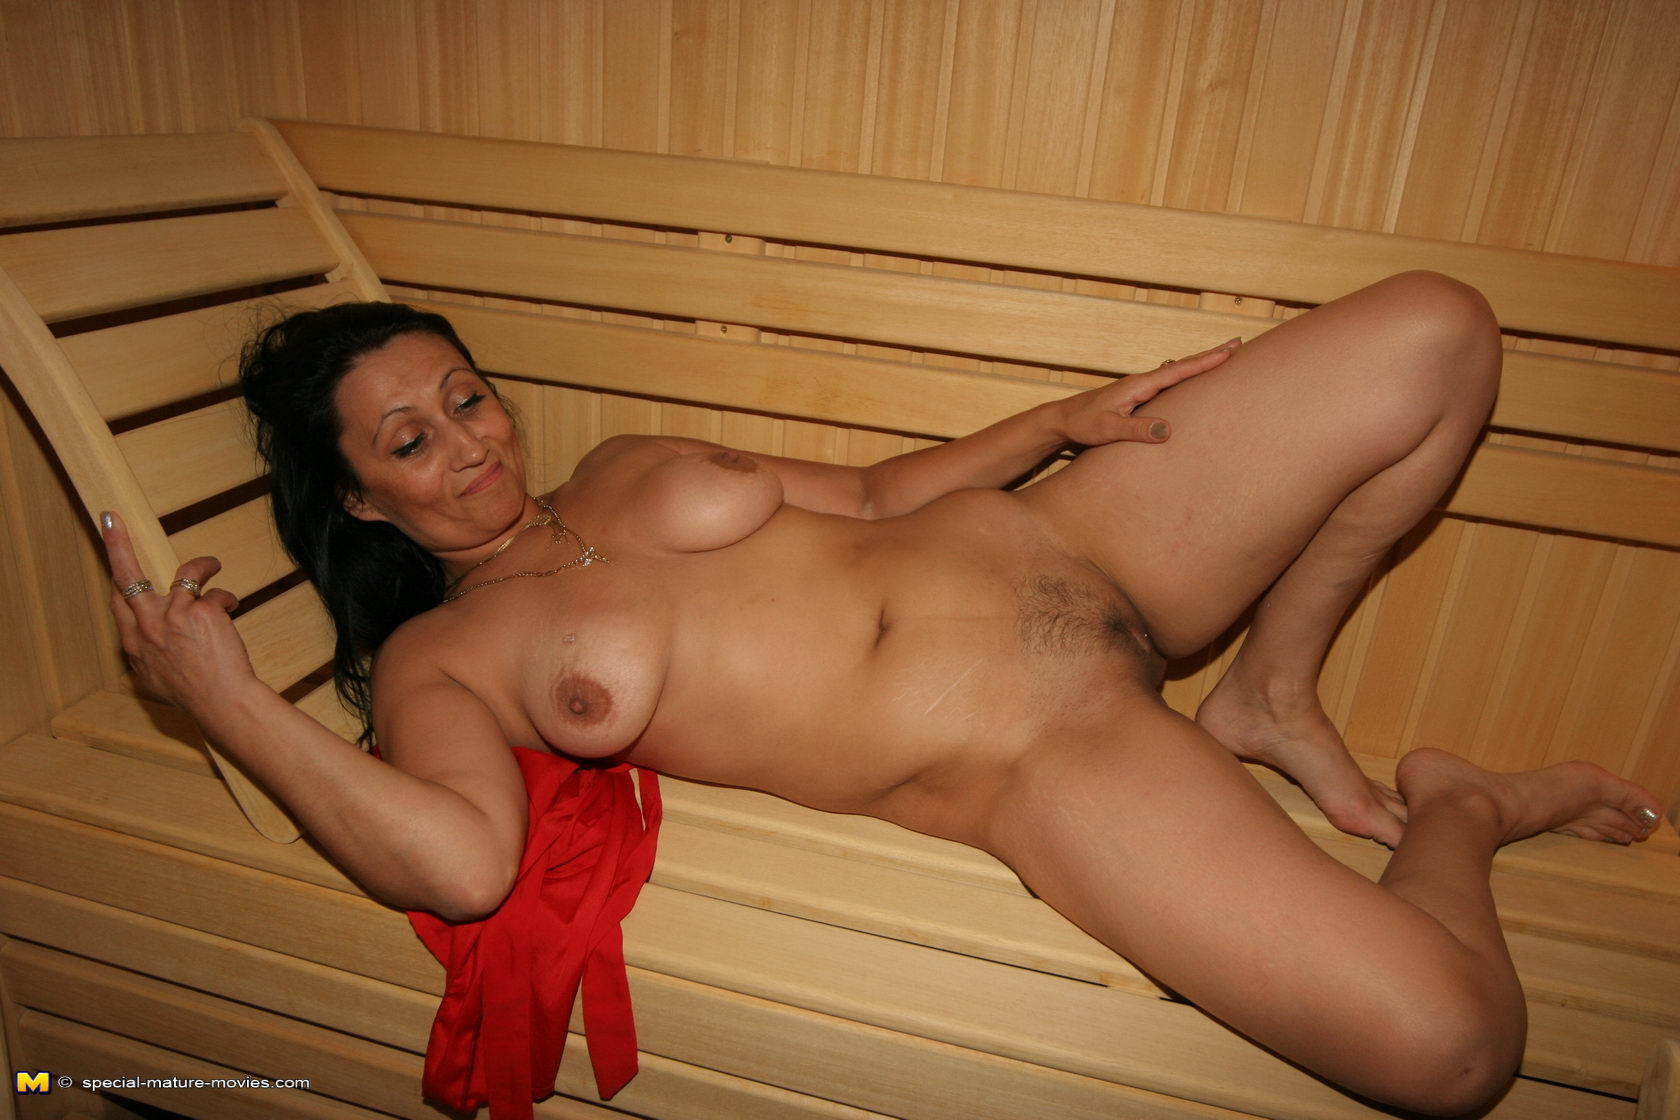 spa halland gratis sex video